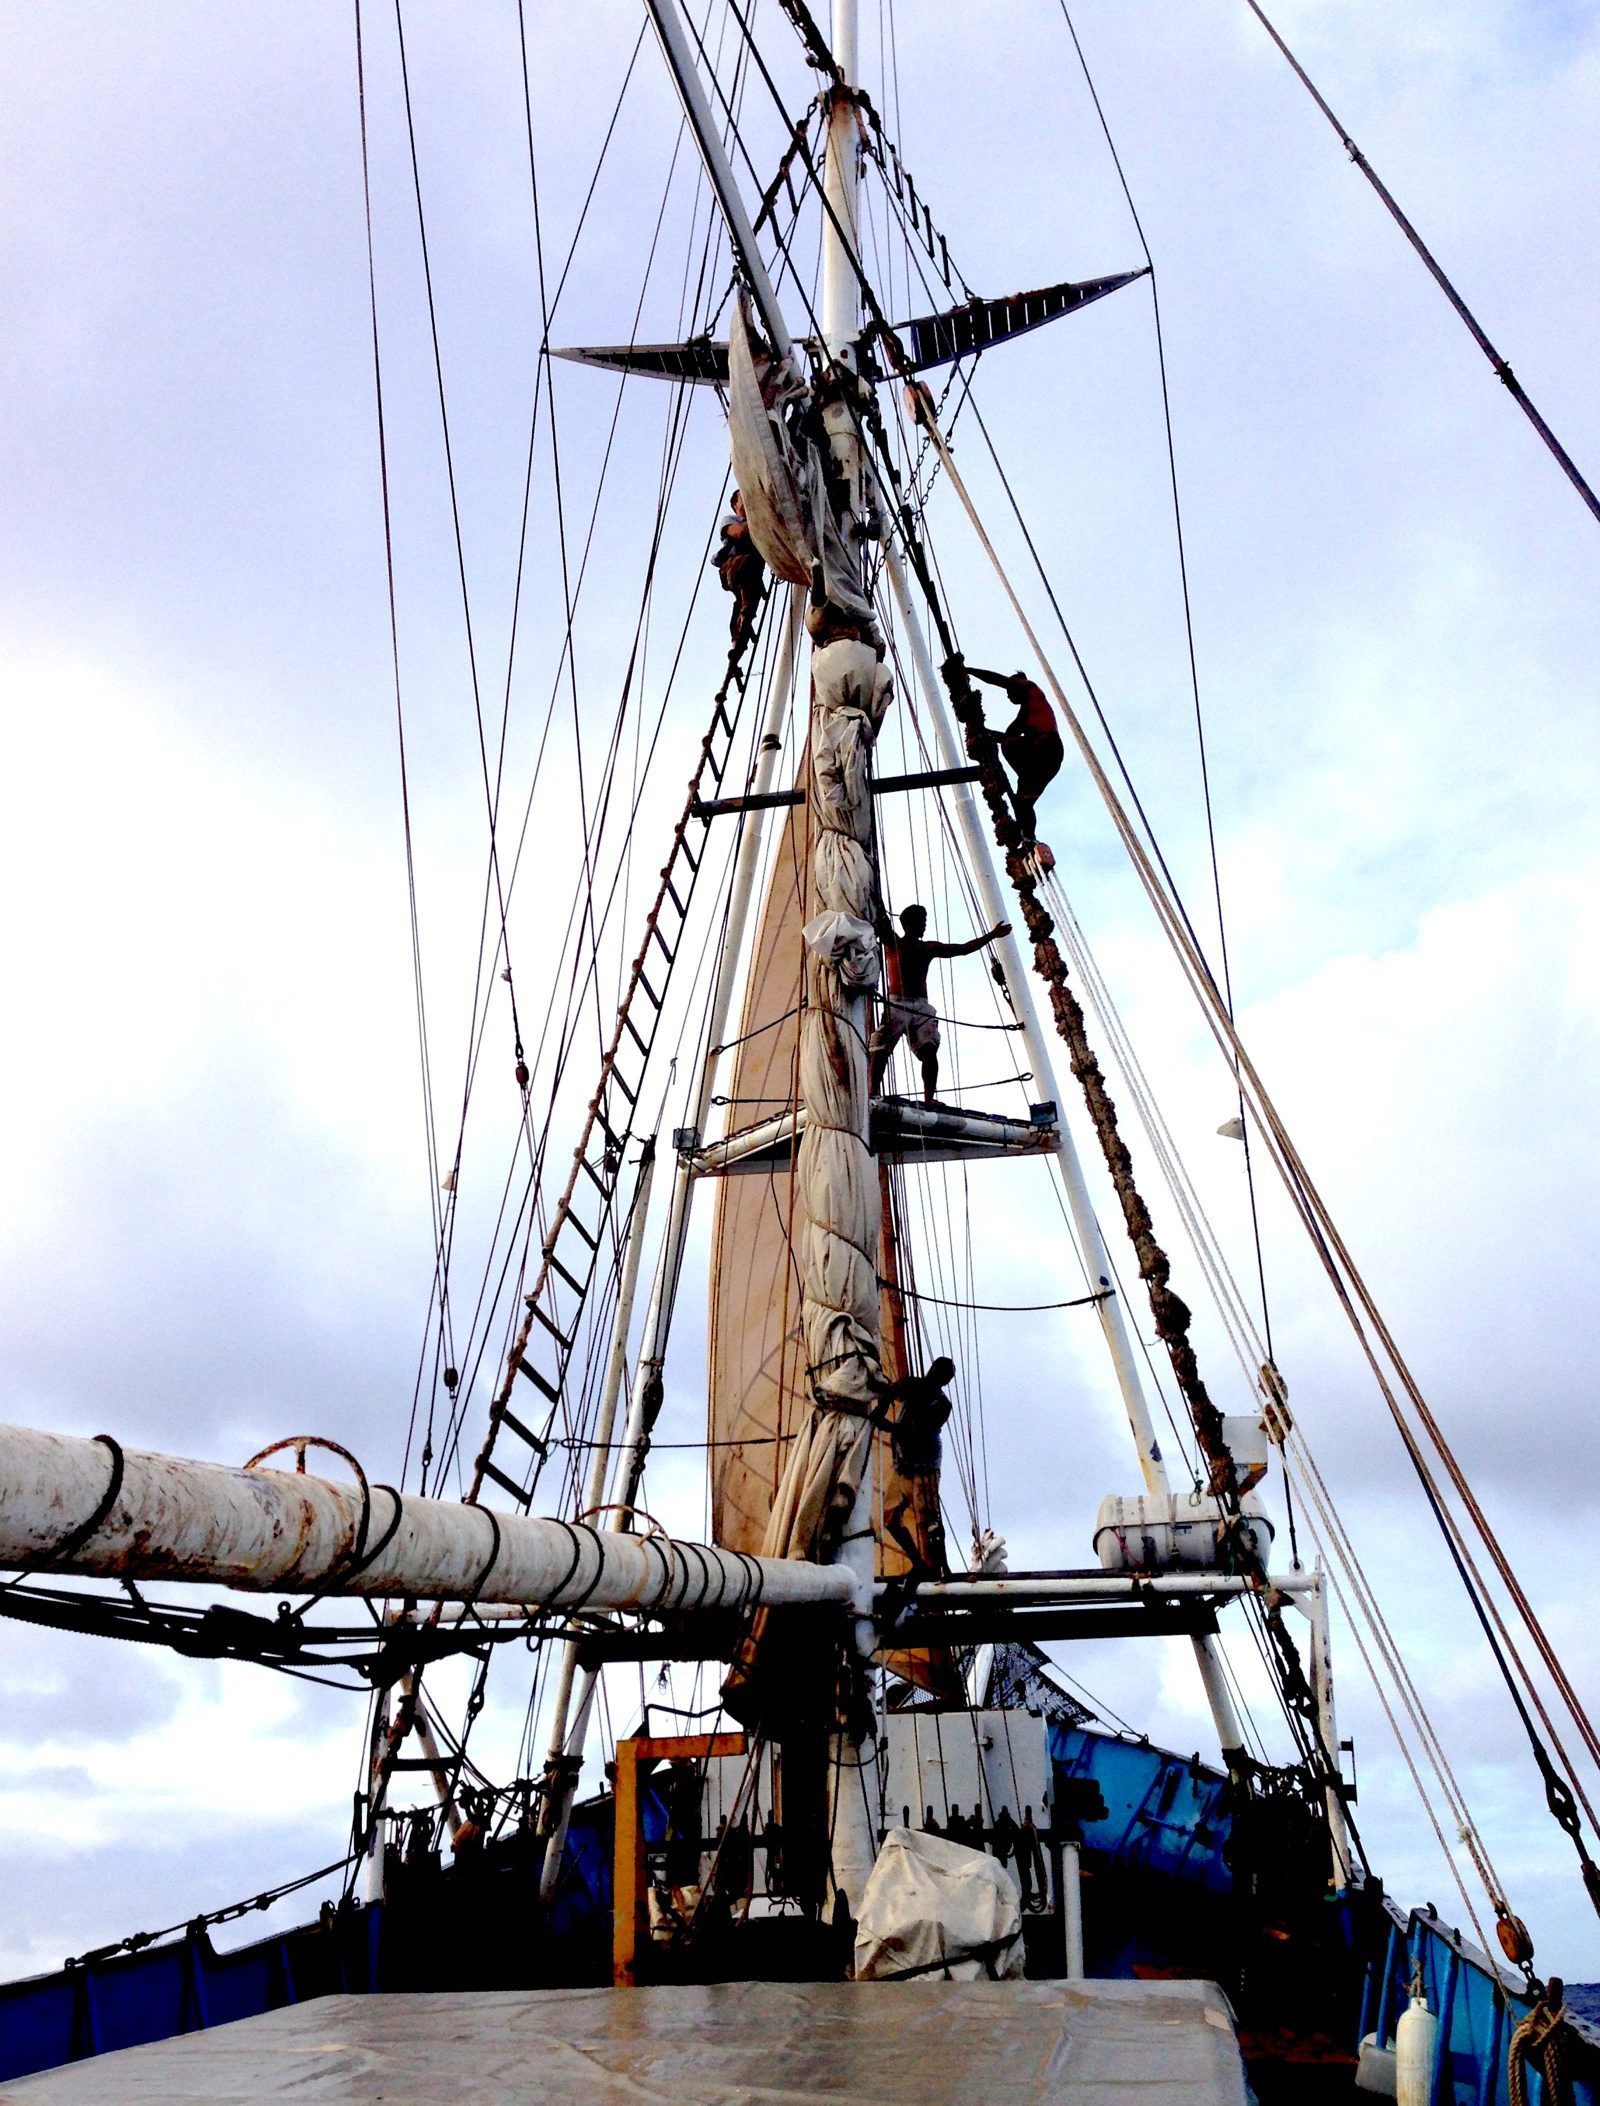 Furling the sail on the SV Kwai